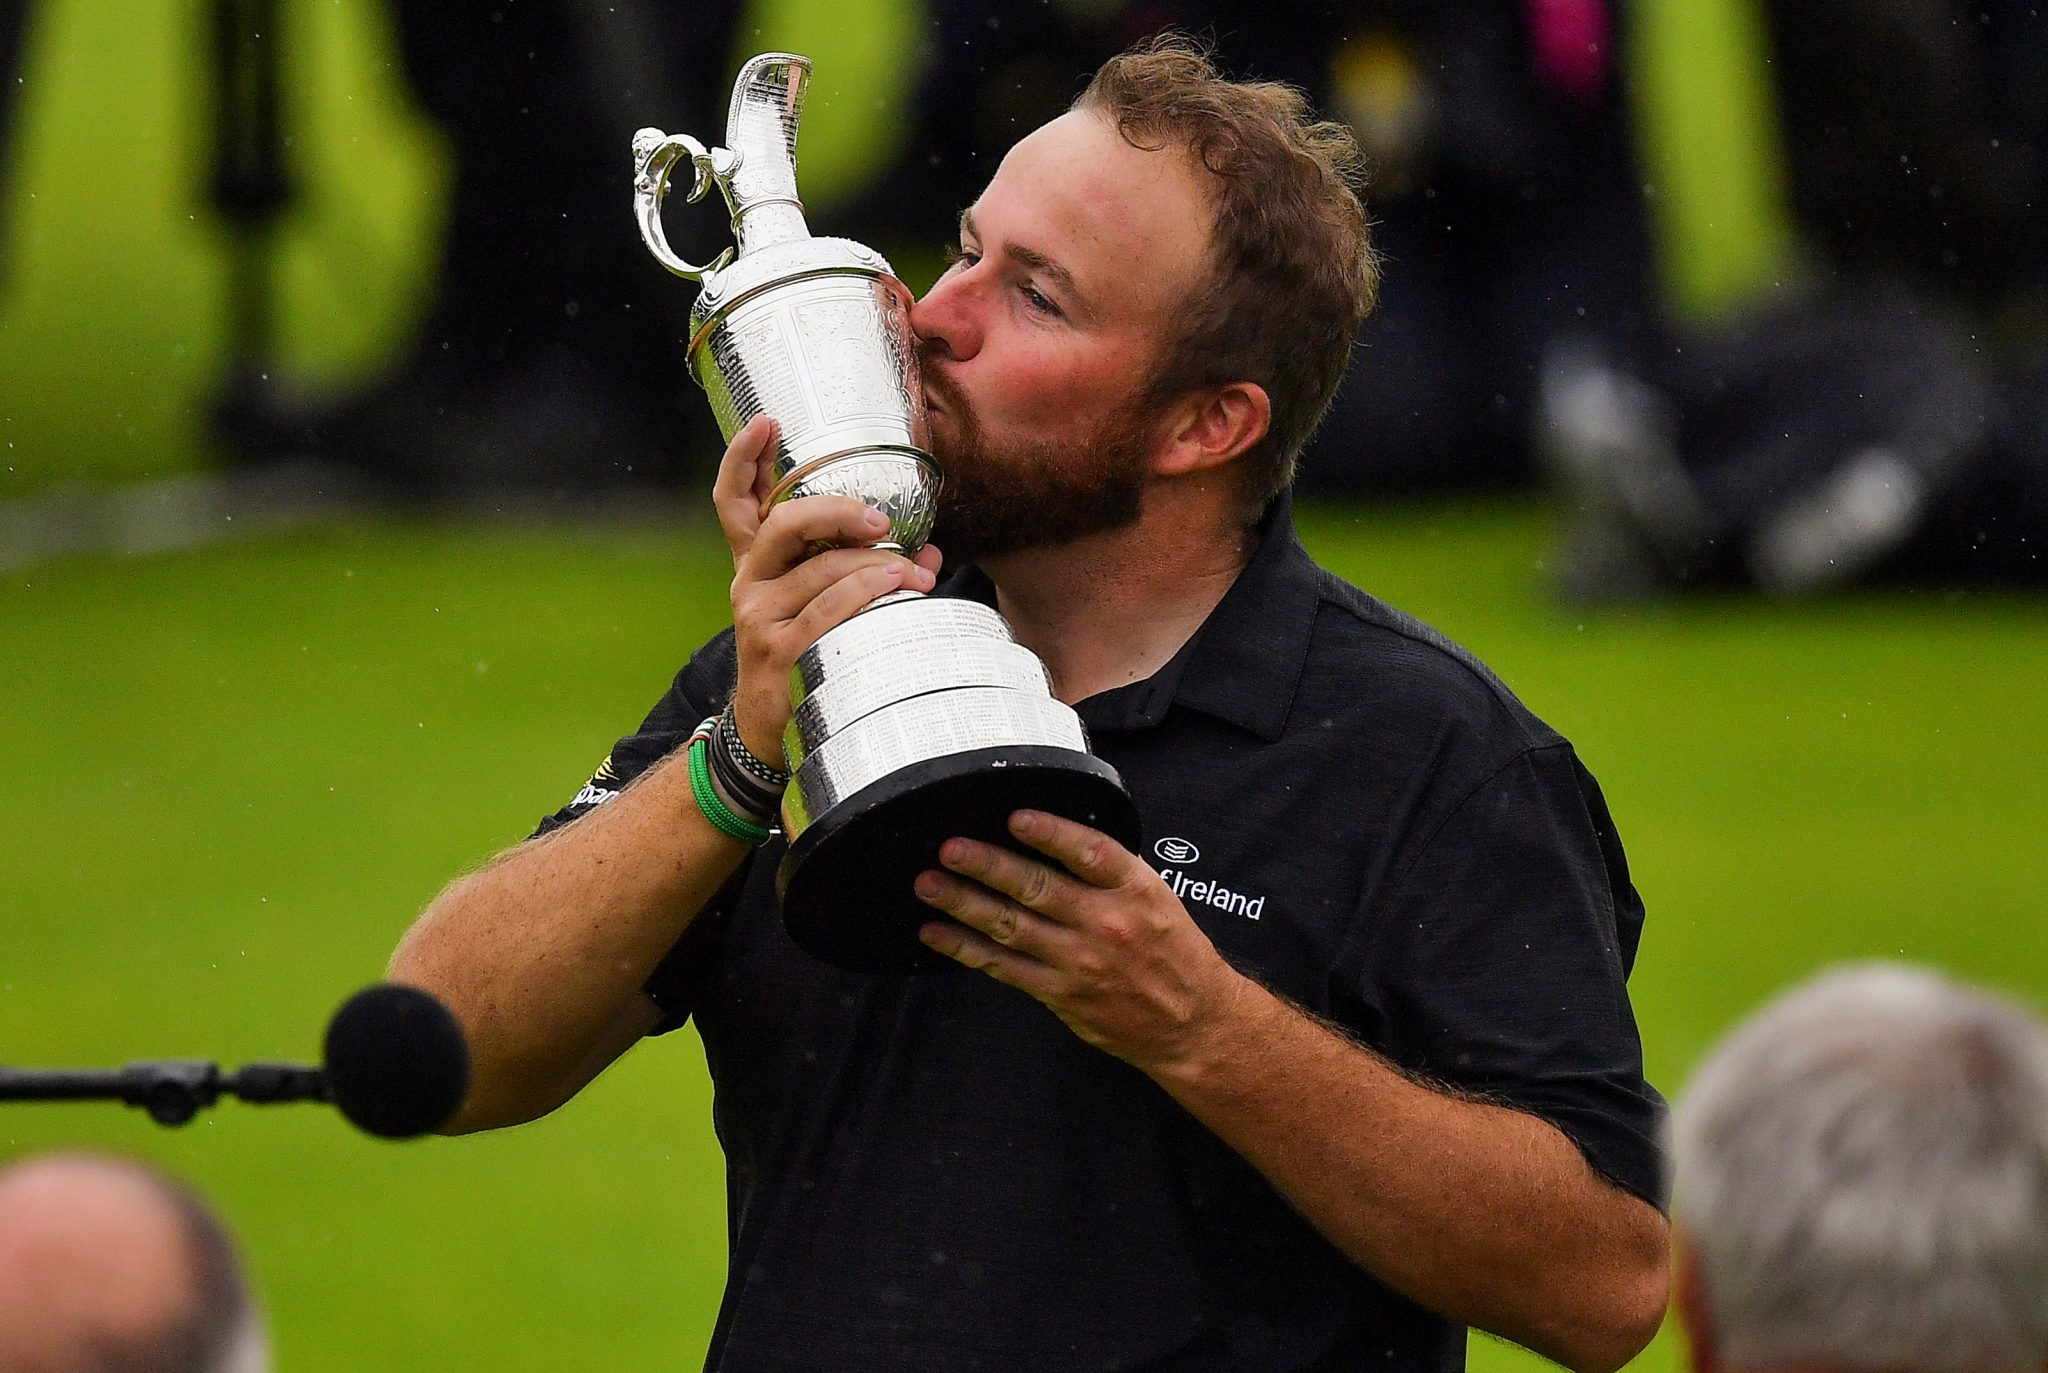 Brilliant Shane Lowry Holds Off Fleetwood To Clinch Open Championship